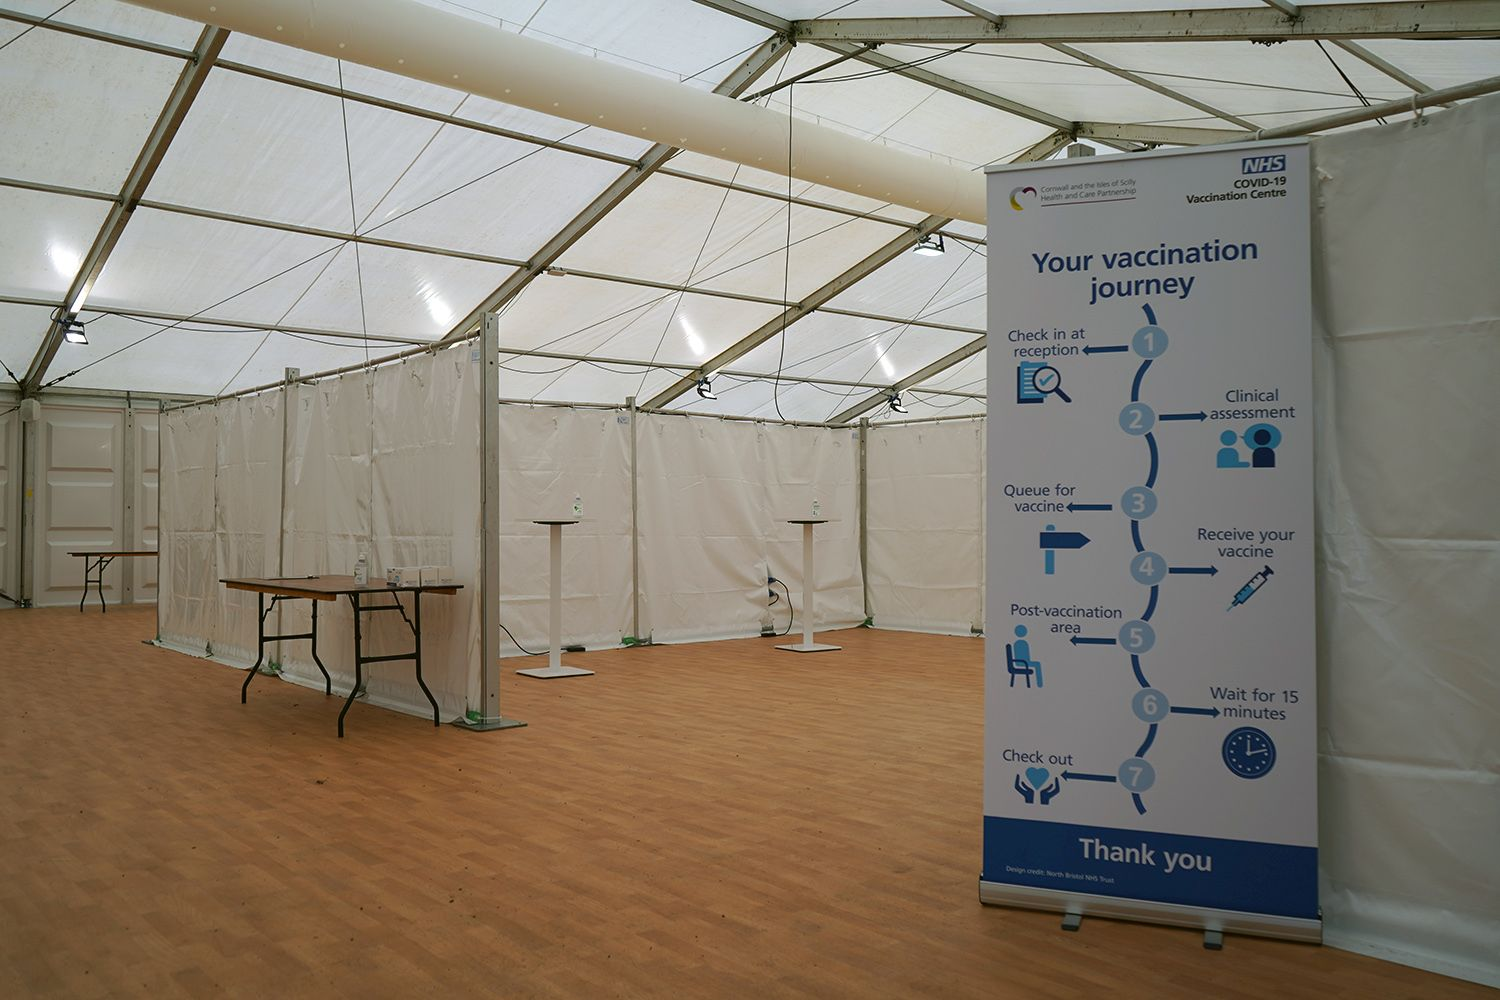 New vaccination centre in Cornwall at Stithians Showground   Falmouth Packet